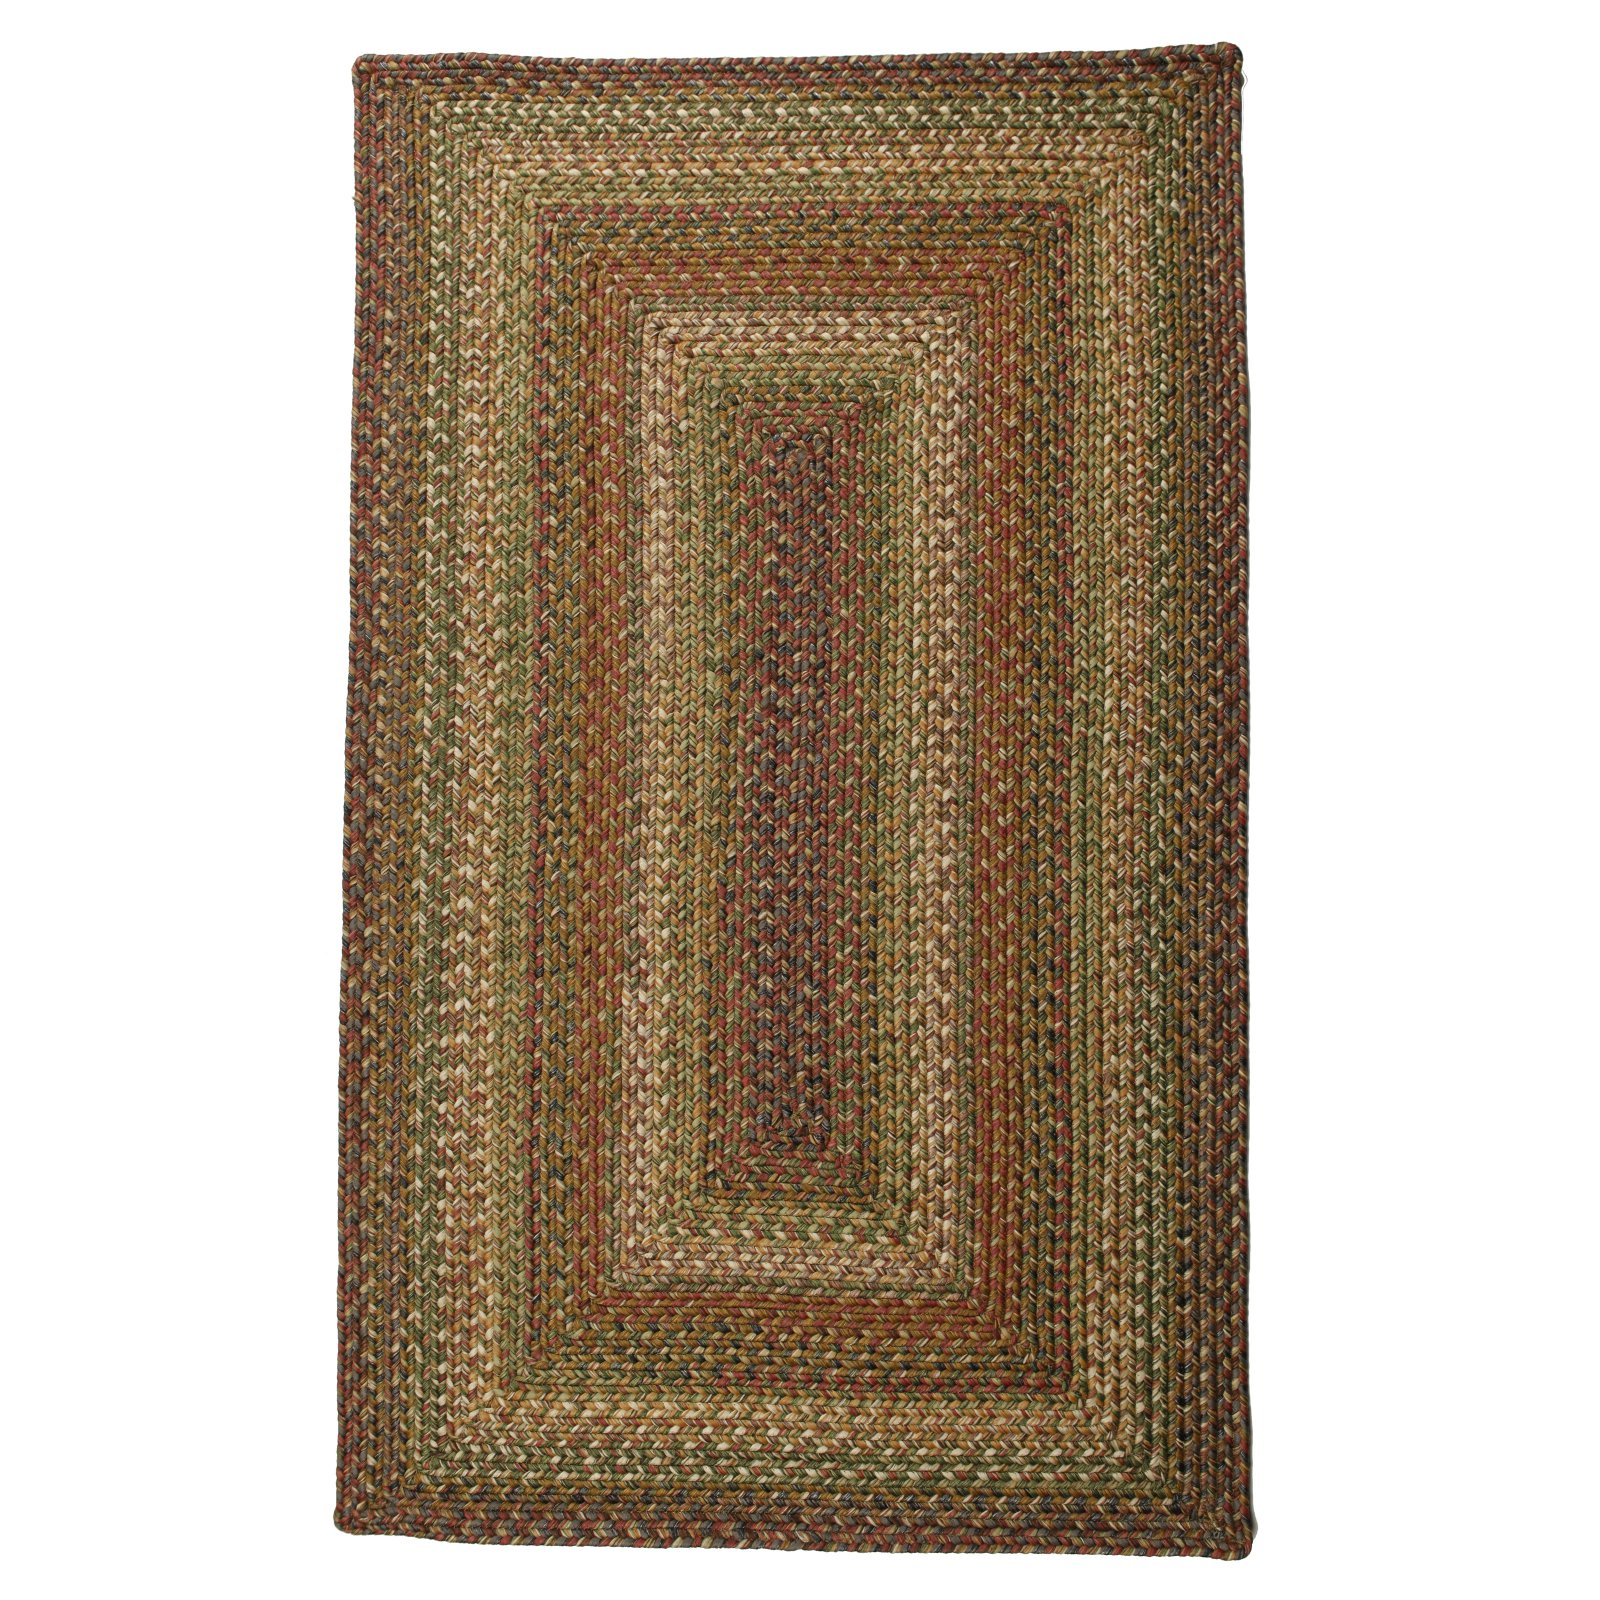 Homespice Decor Ultra Durable Rainforest Braided Rug by Homespice Decor